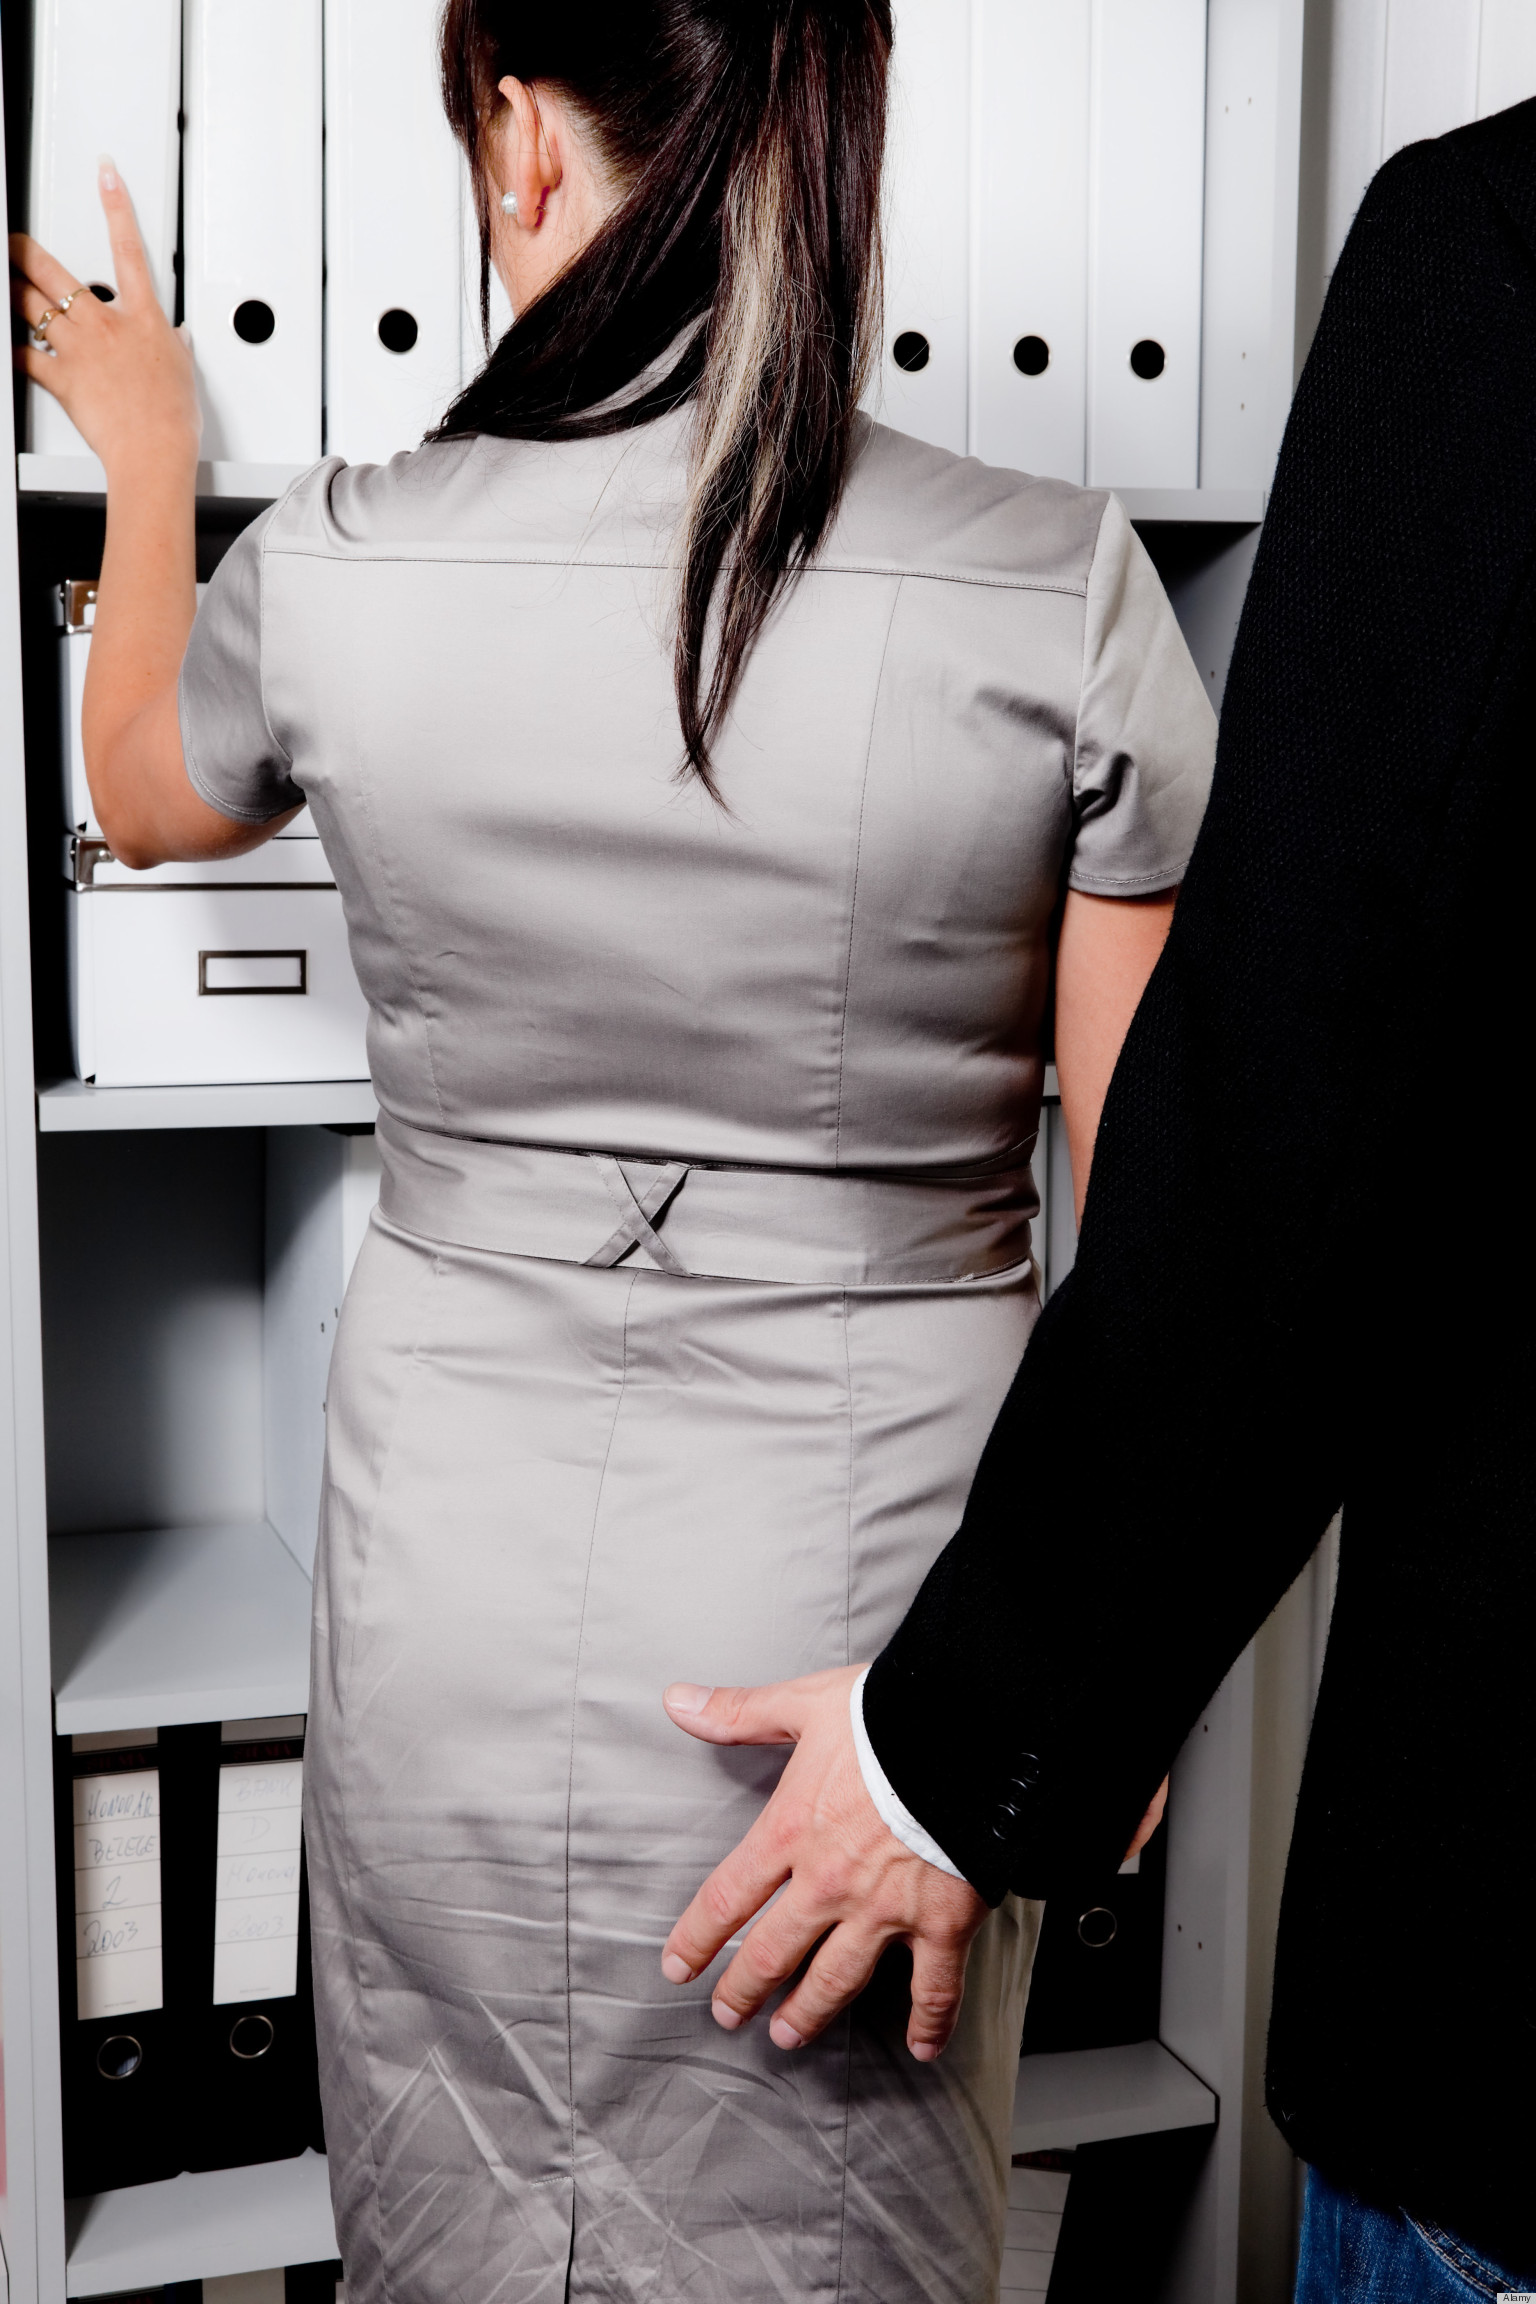 Pity, Sexual harassment at work pity